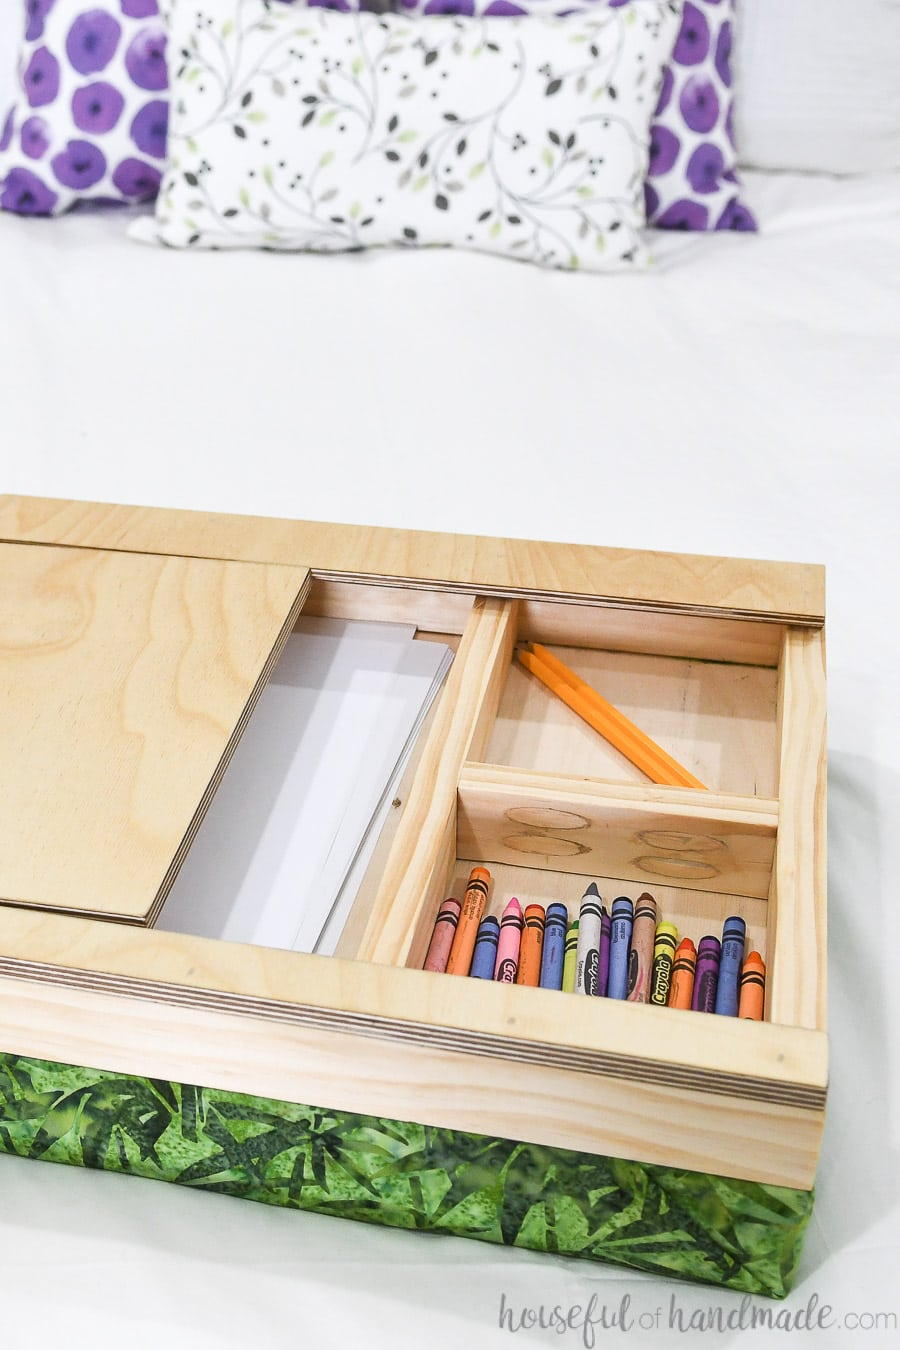 Lap desk with top slide off showing compartments for art supplies underneath.